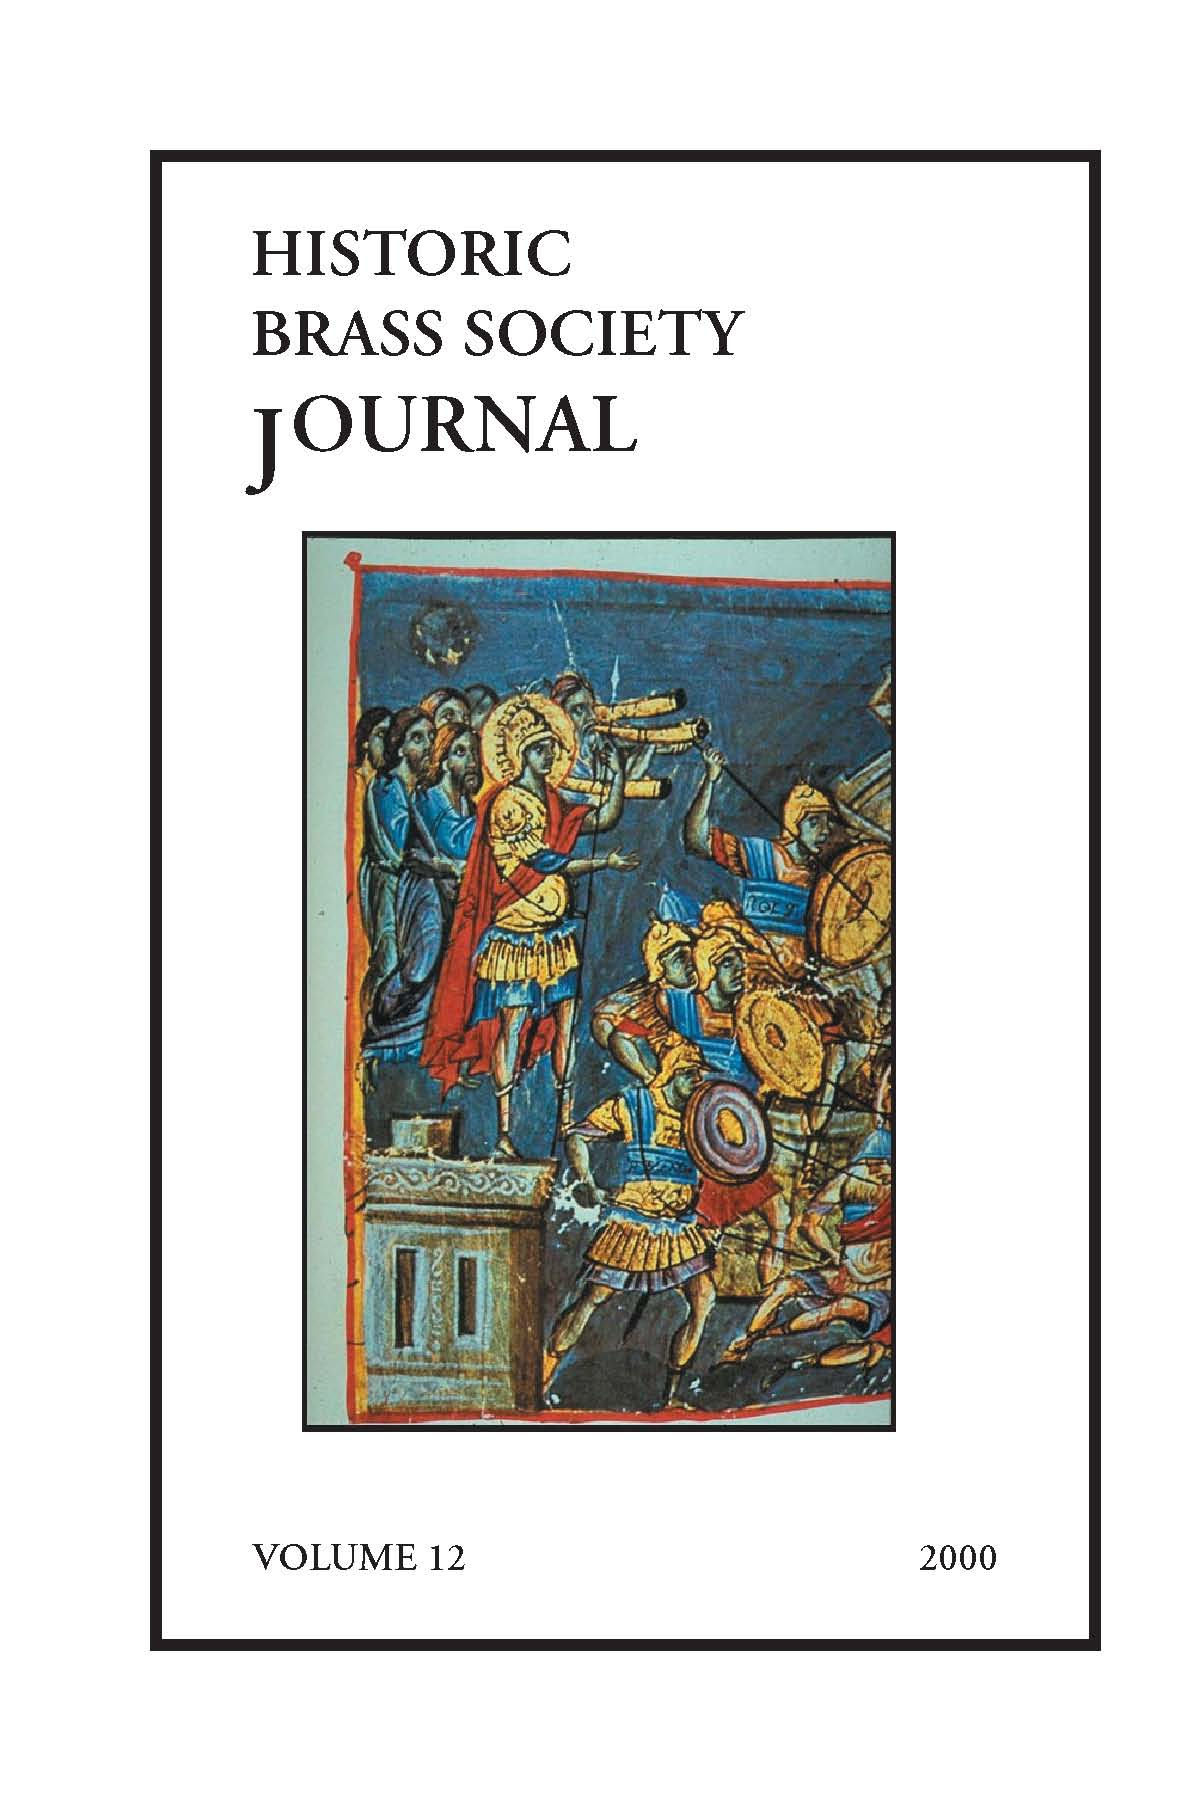 Historic Brass Journal - Volume 12 - 2000